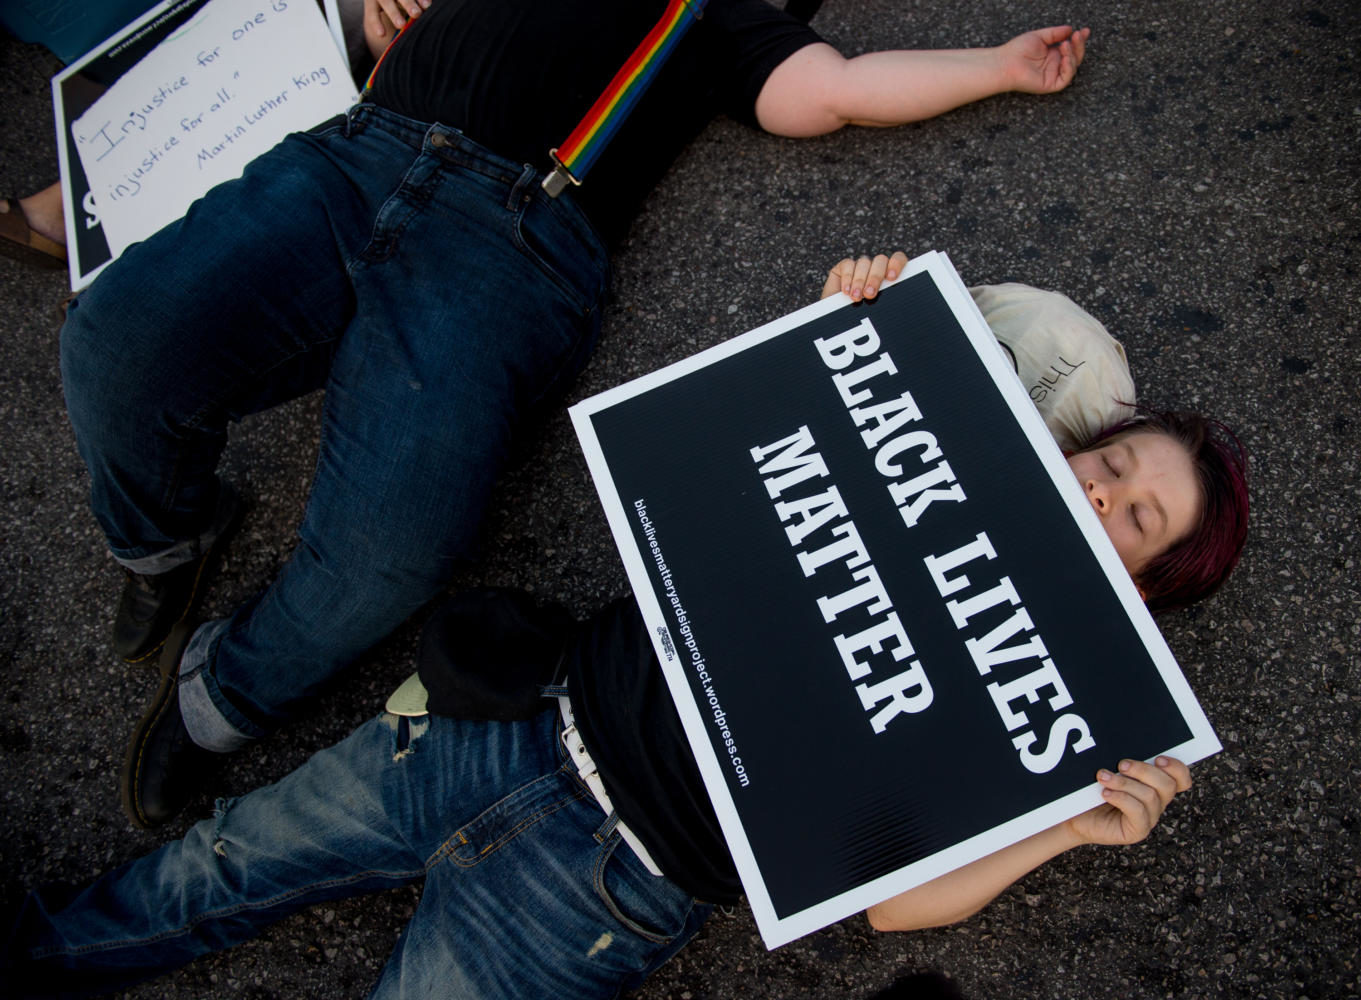 Protesters stage a die-in on the corner of Delmar and Skinker on Saturday, Sept. 16, 2017, in St. Louis, Missouri. The protests come a day after former St. Louis police officer Jason Stockley was found not guilty in the fatal shooting of Anthony Lamar Smith.  (Brian Muñoz | @BrianMMunoz)